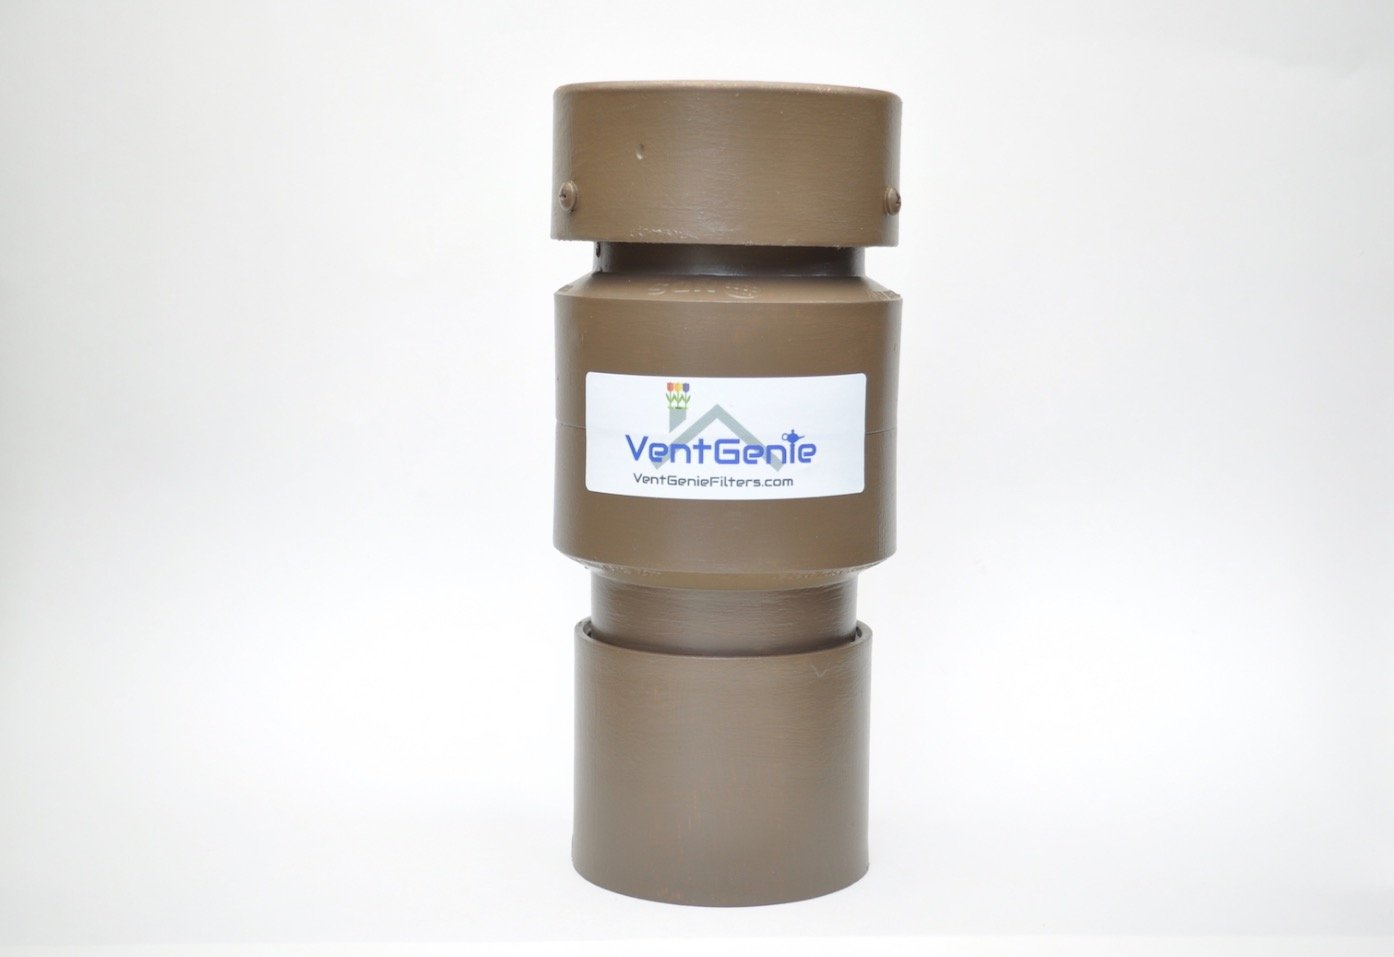 VentGenie 3 Inch Sewer/Septic Vent Pipe Filter